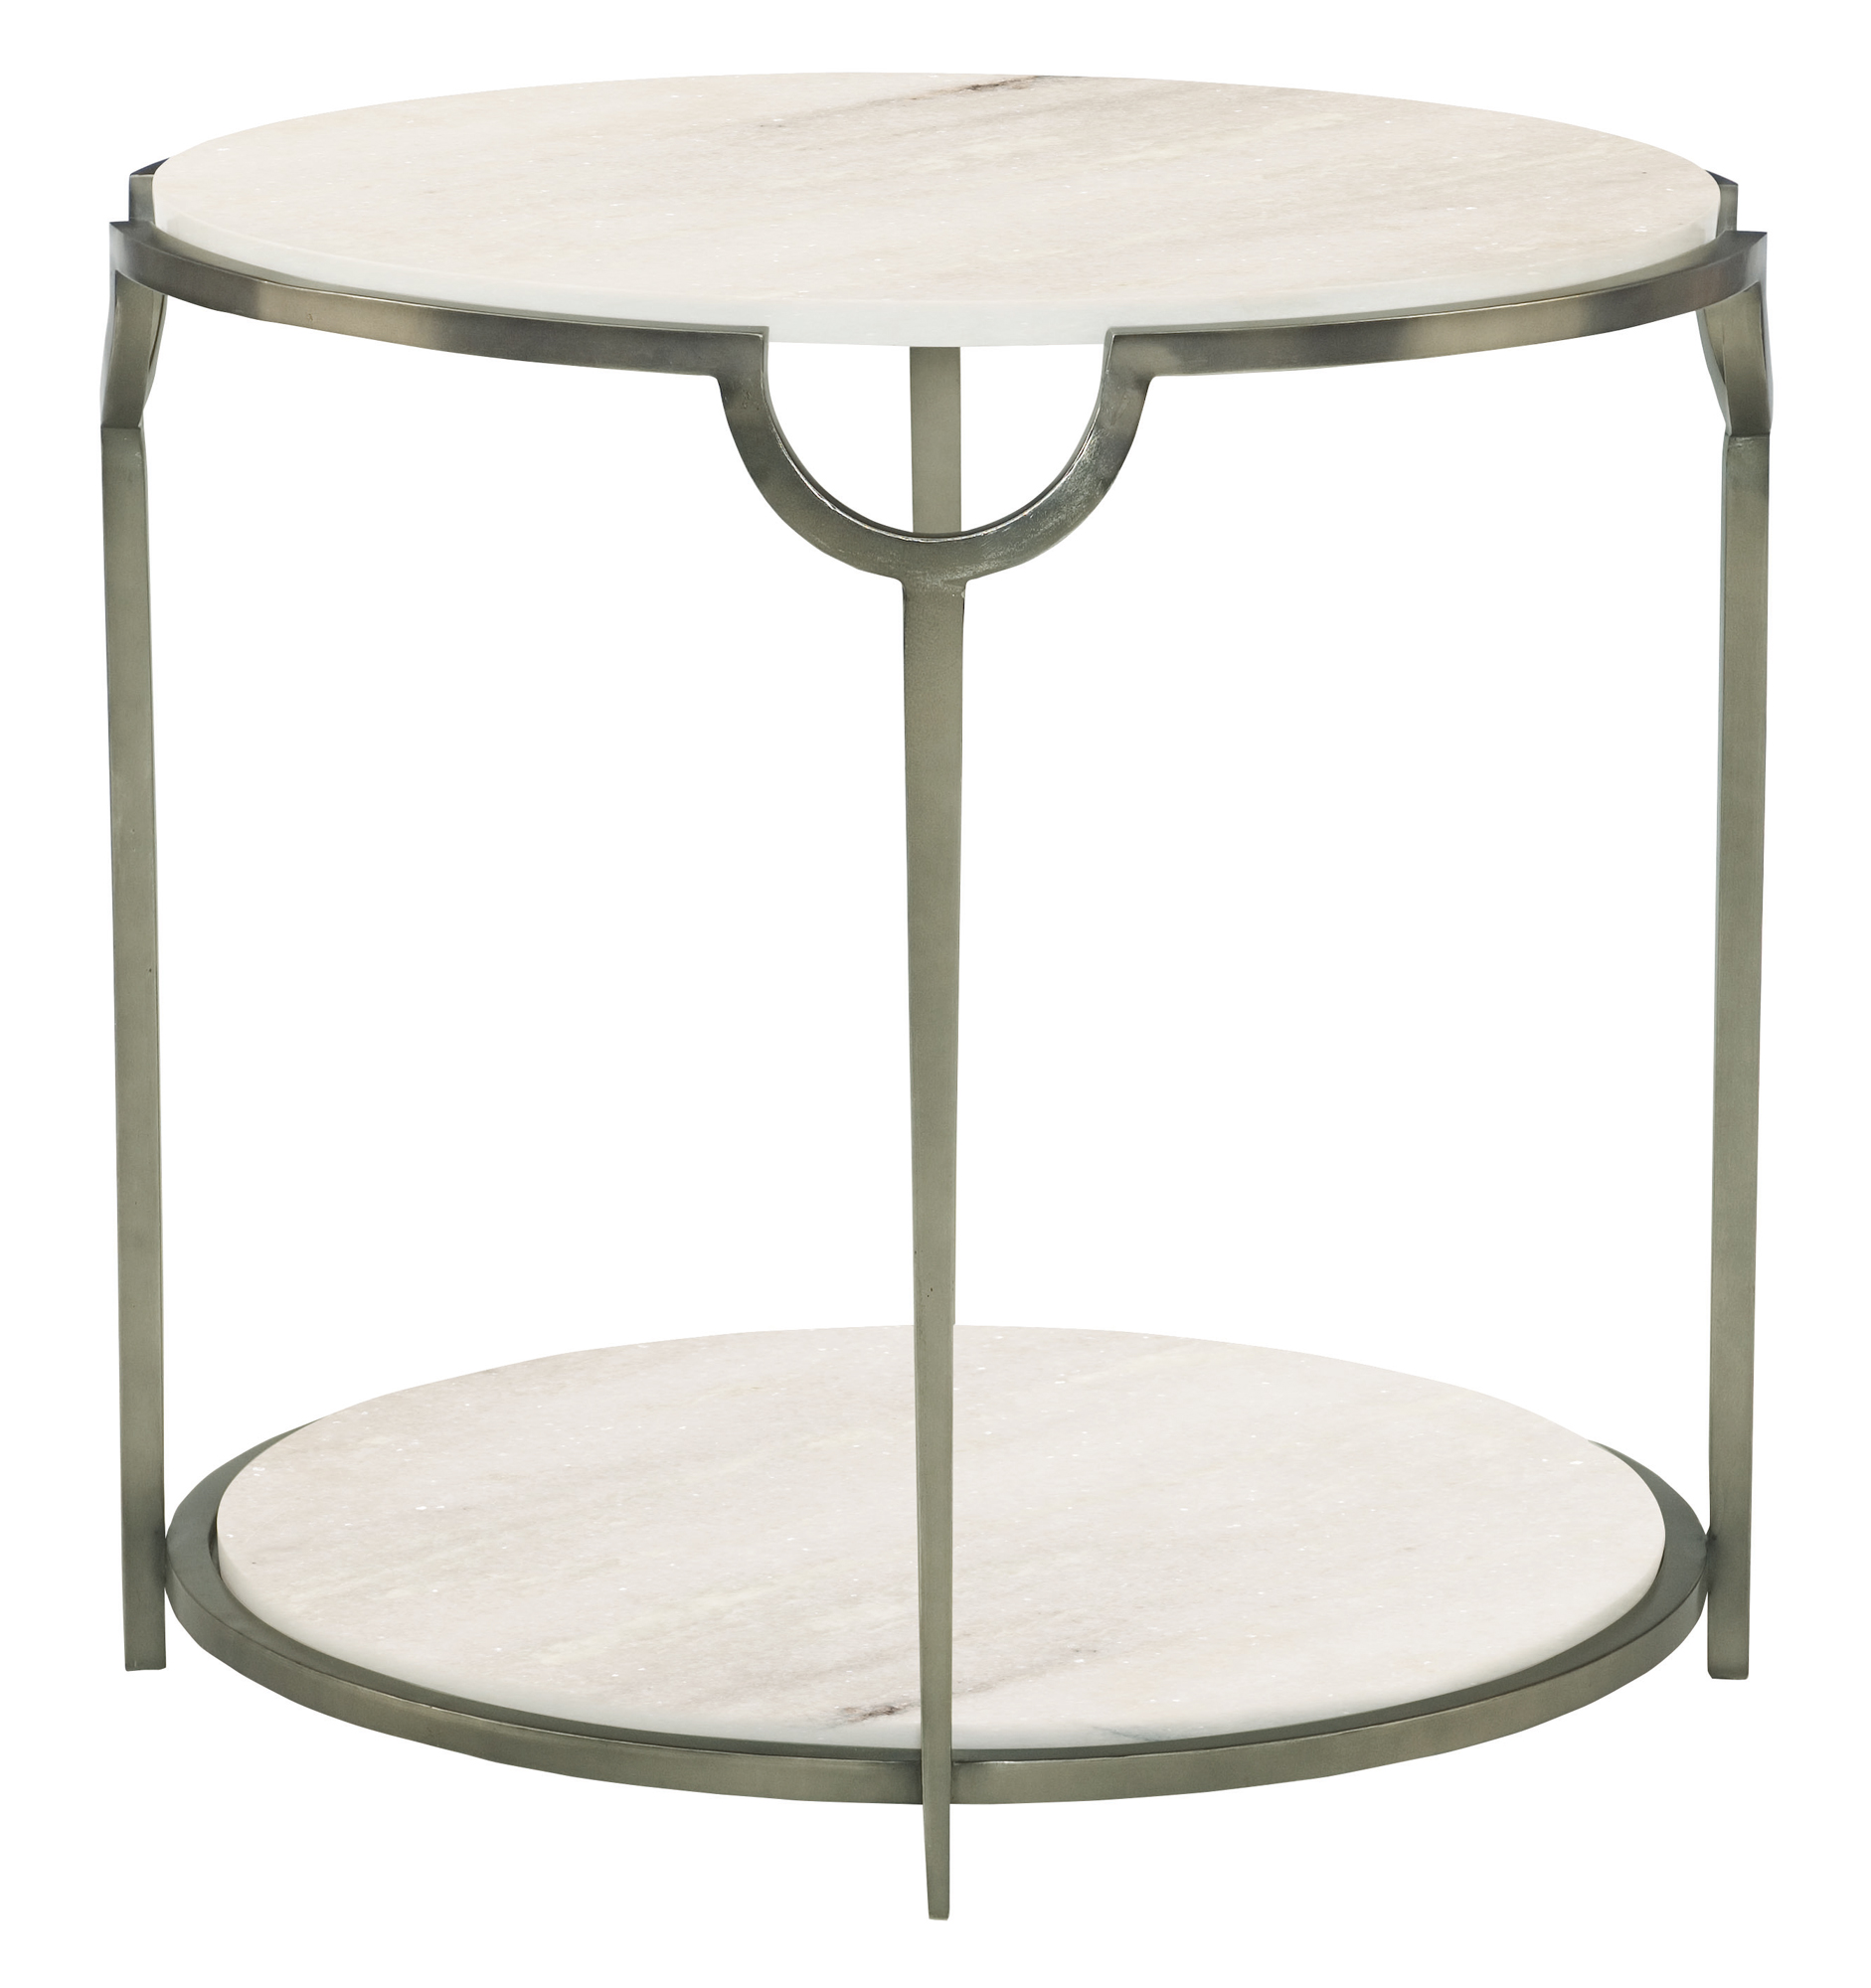 Round Coffee Table Jove Collection By Baxter Design: Round End Table